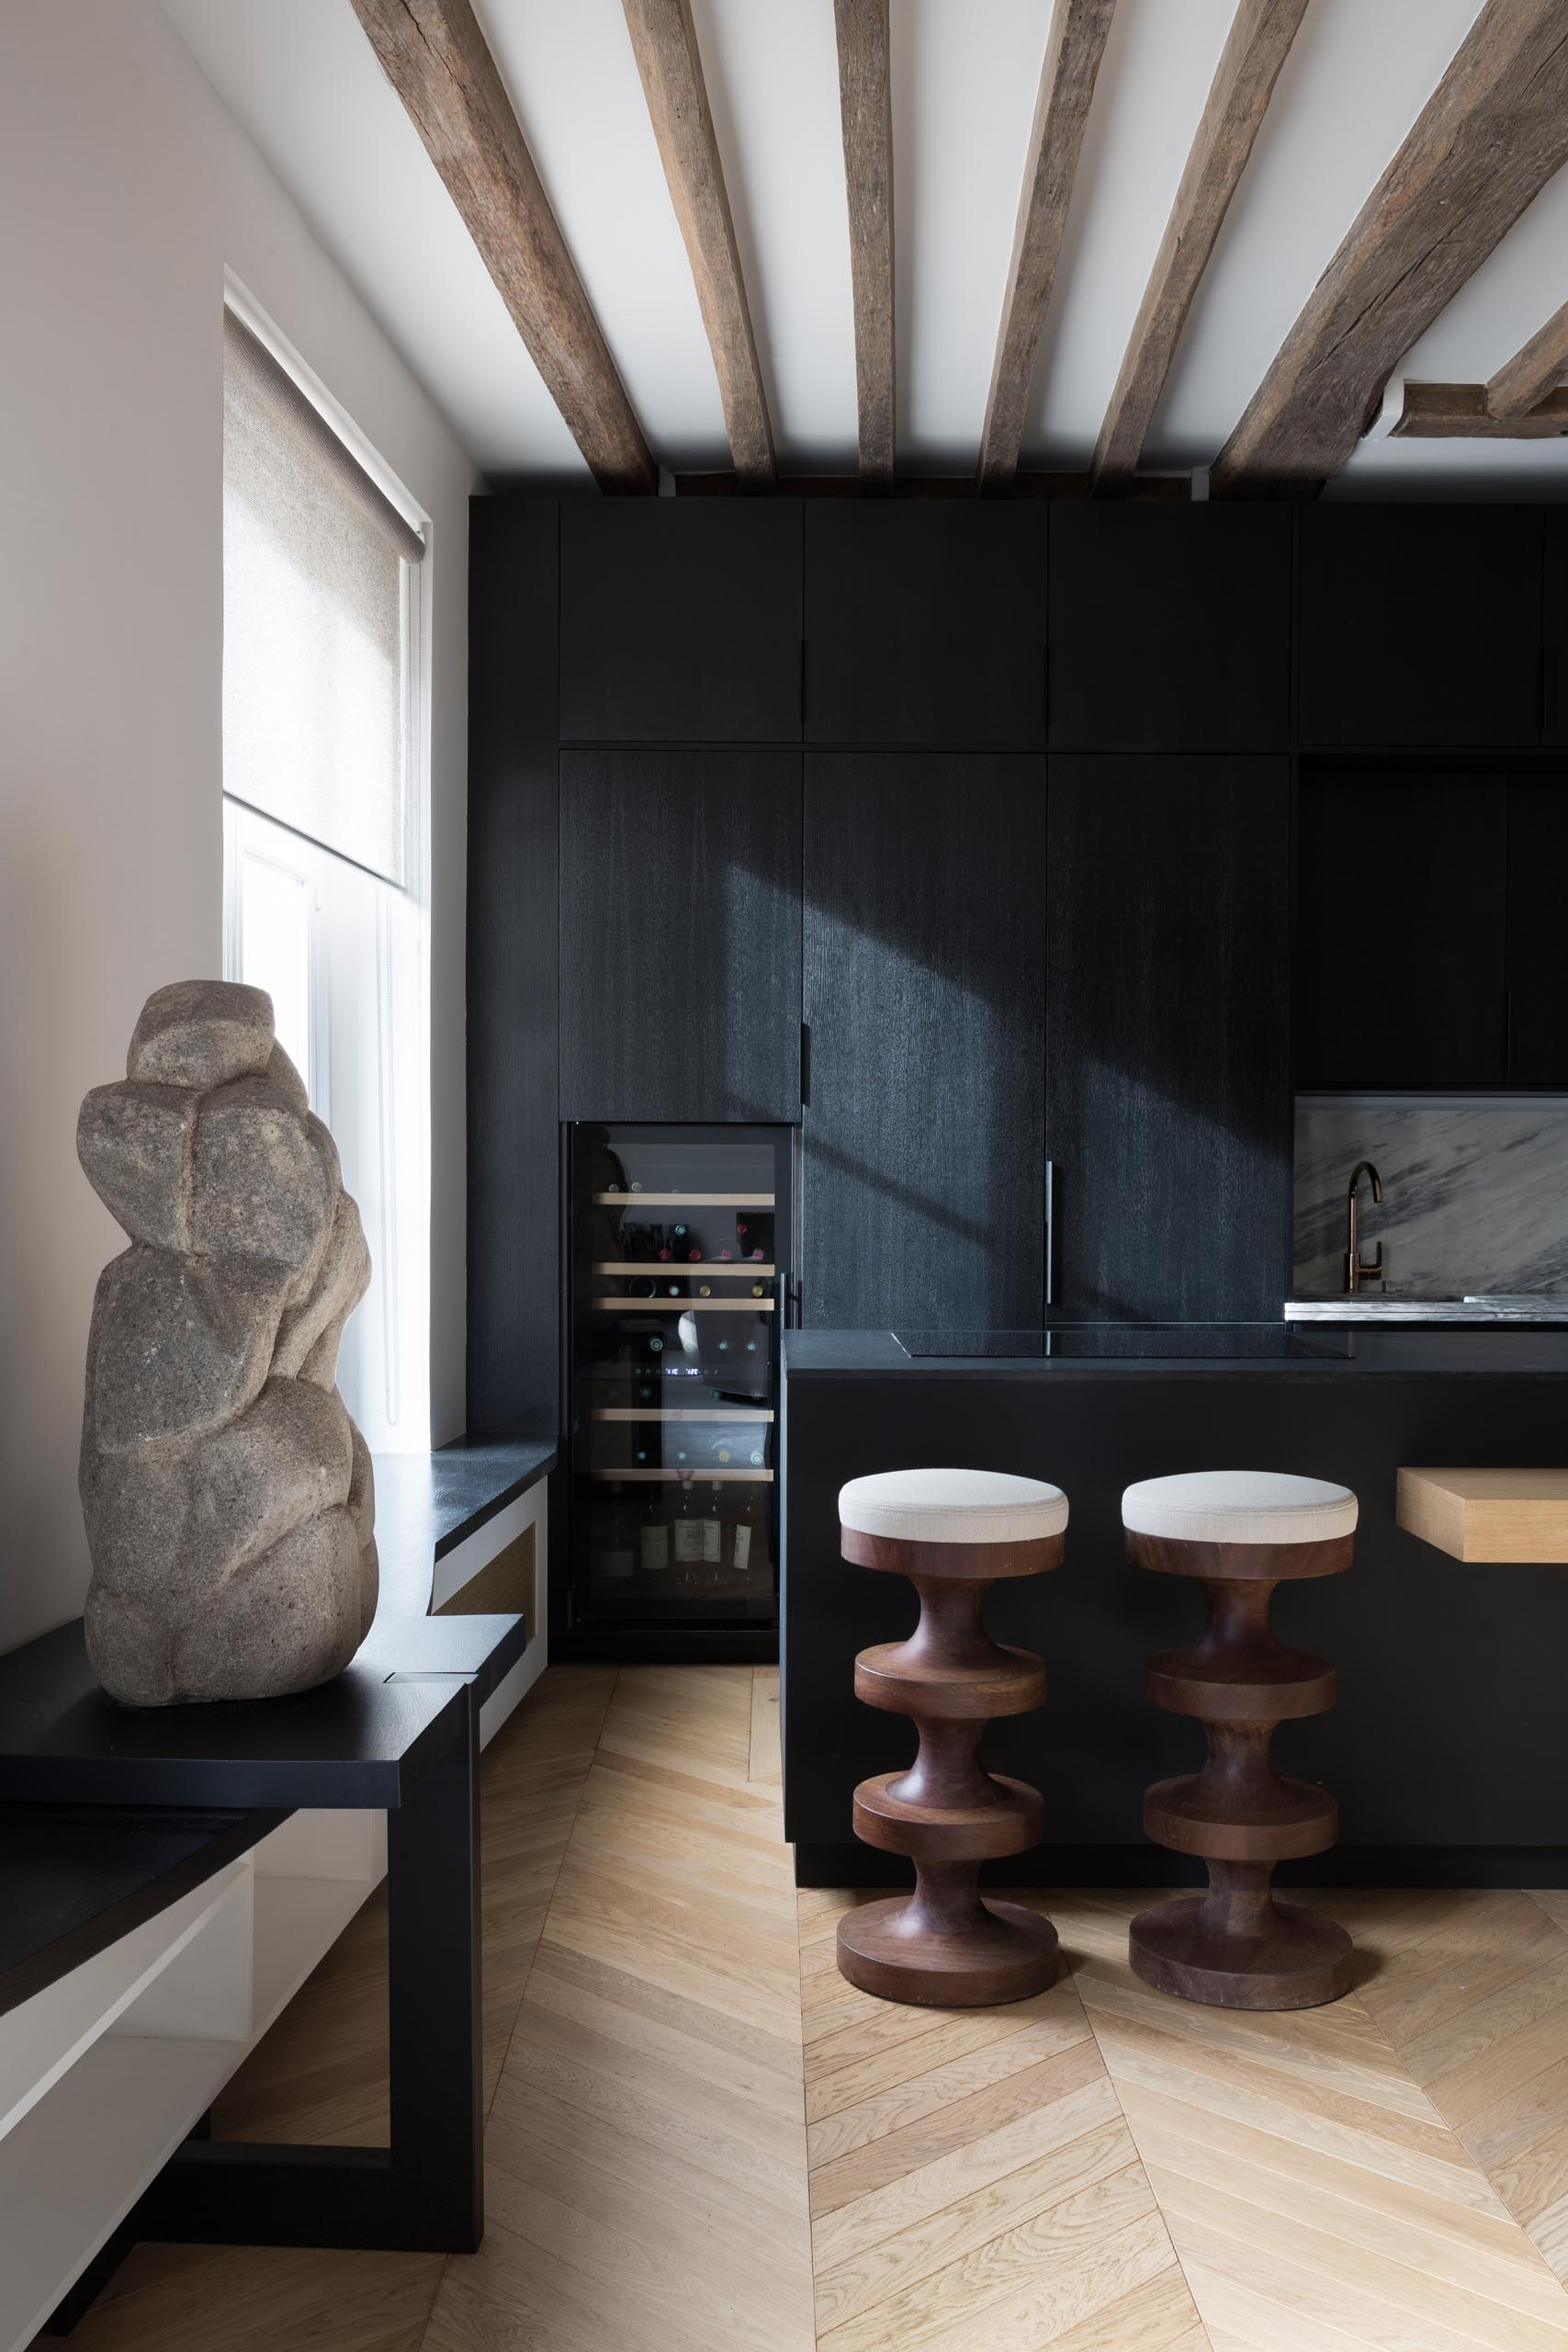 A modern matte black kitchen with a wine fridge and exposed wood beams.